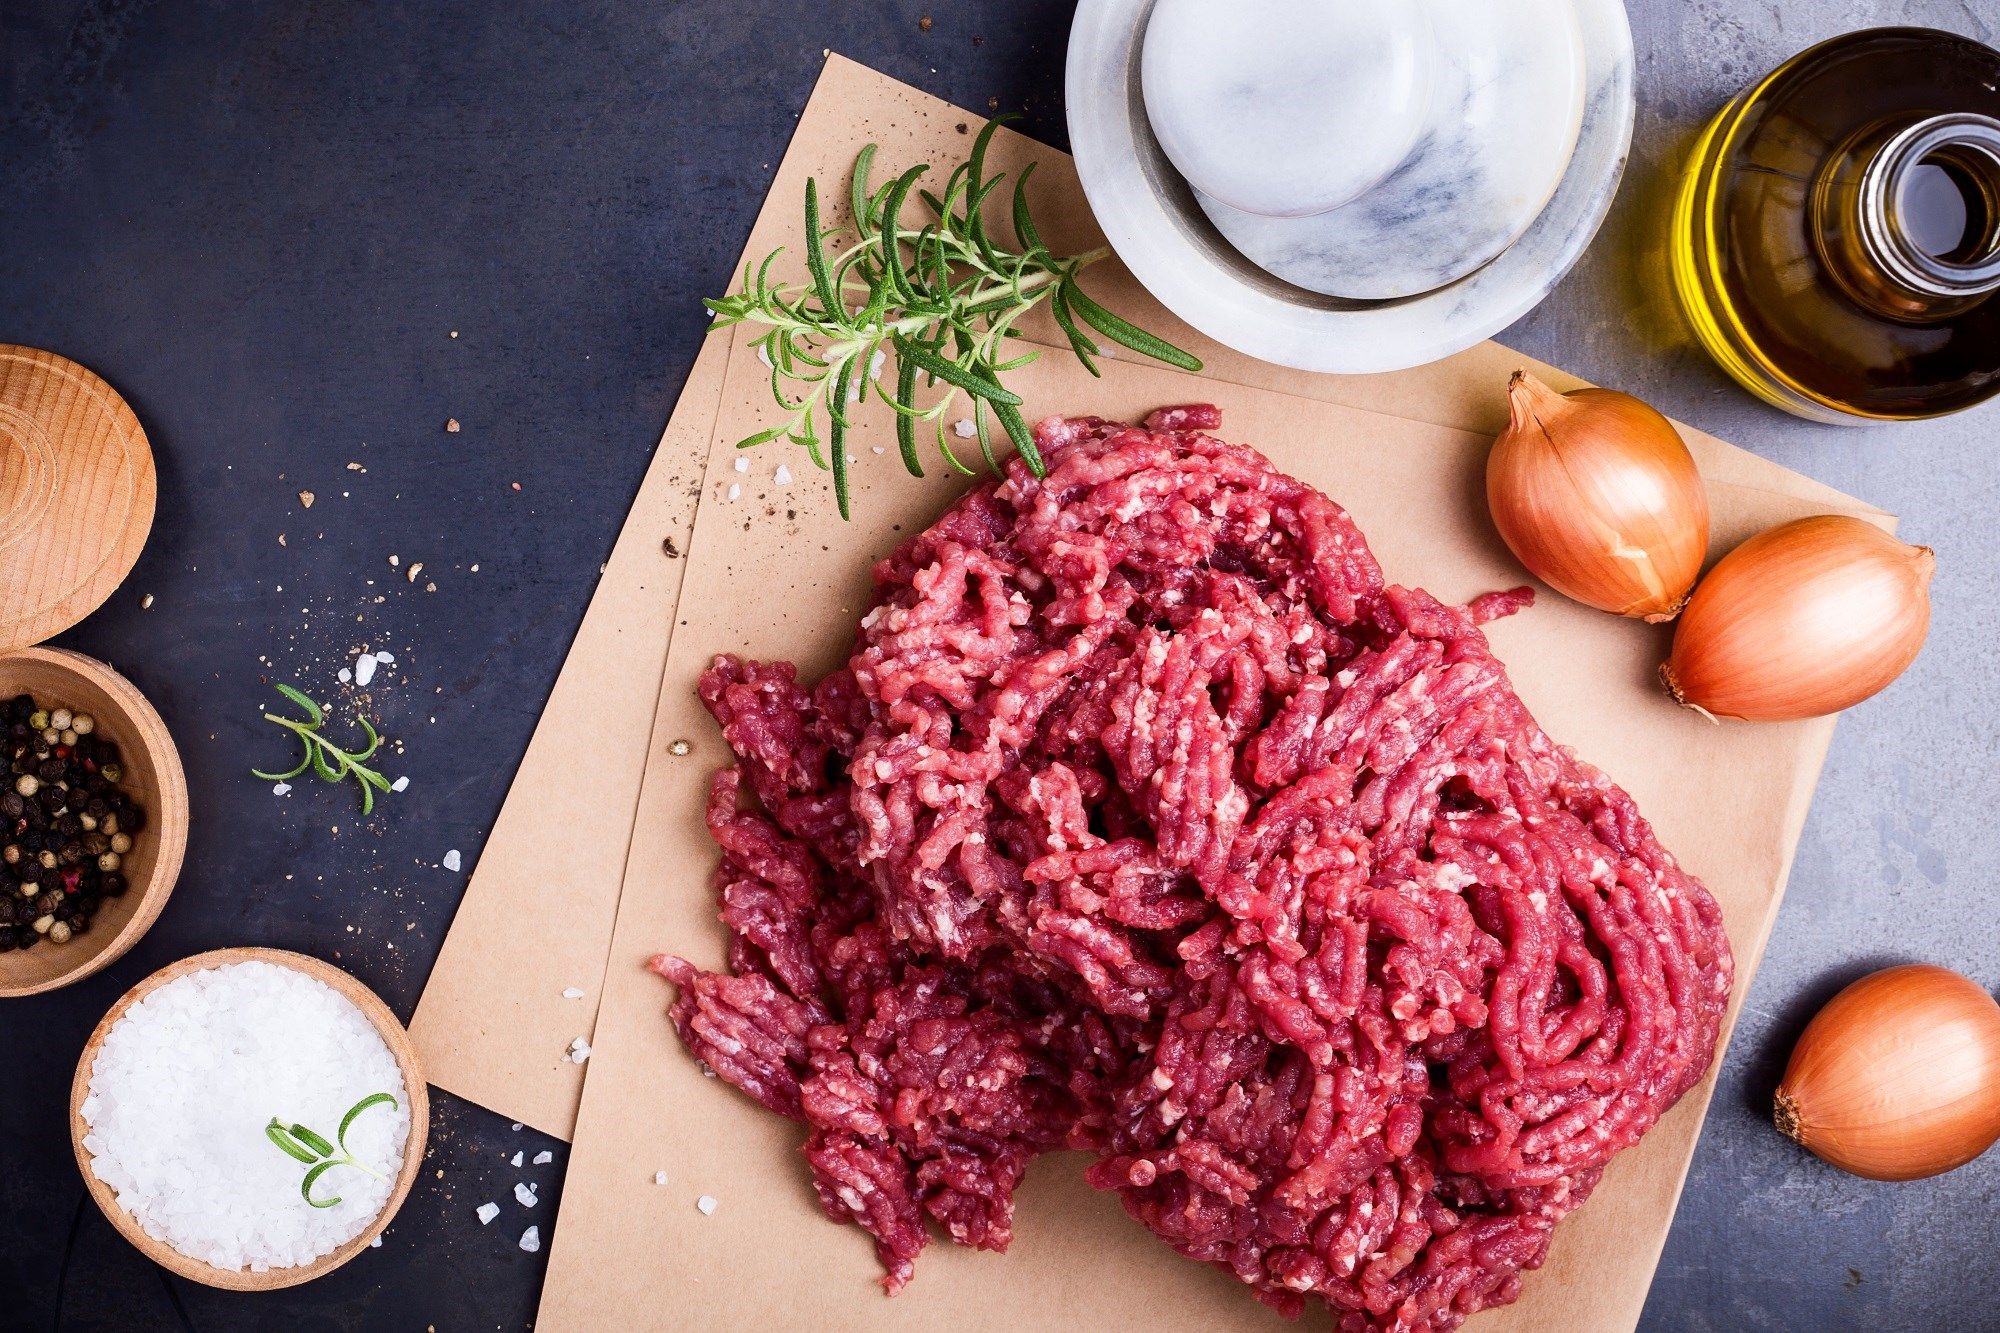 Ground Beef Recalled After <i>E Coli</i> Outbreak